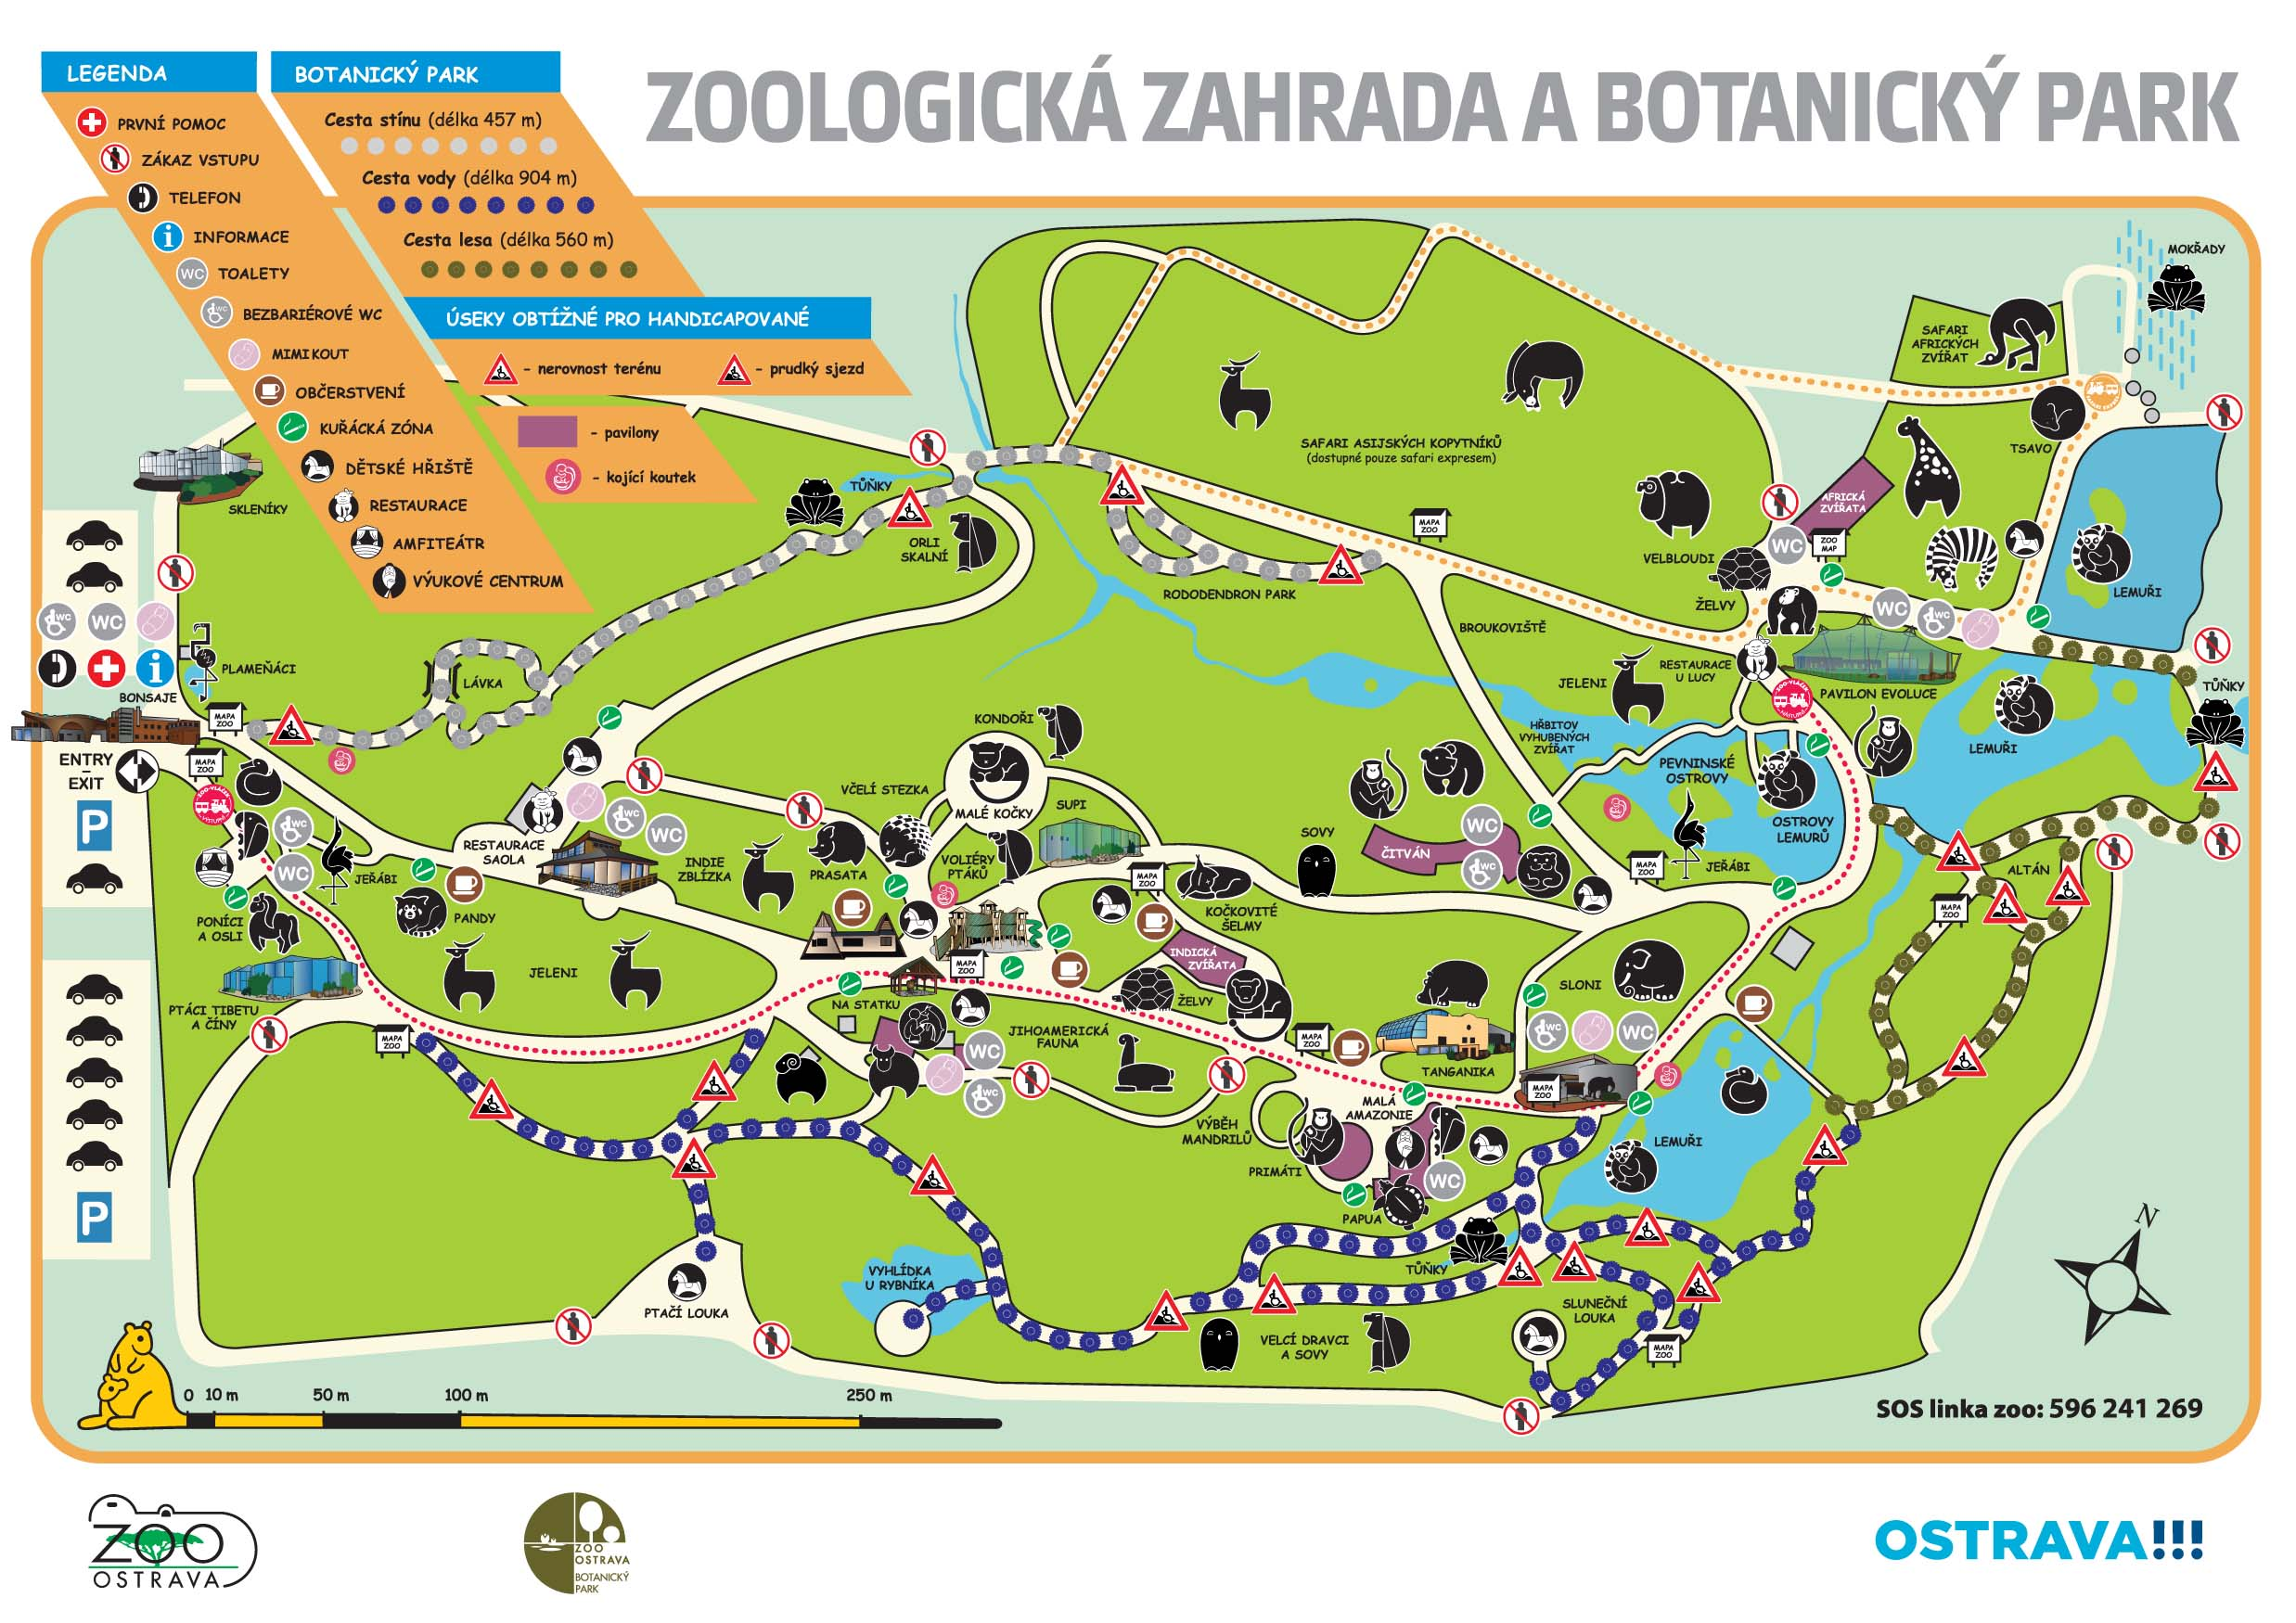 Ostrava Zoo A large zoo with many animals and a large botanical